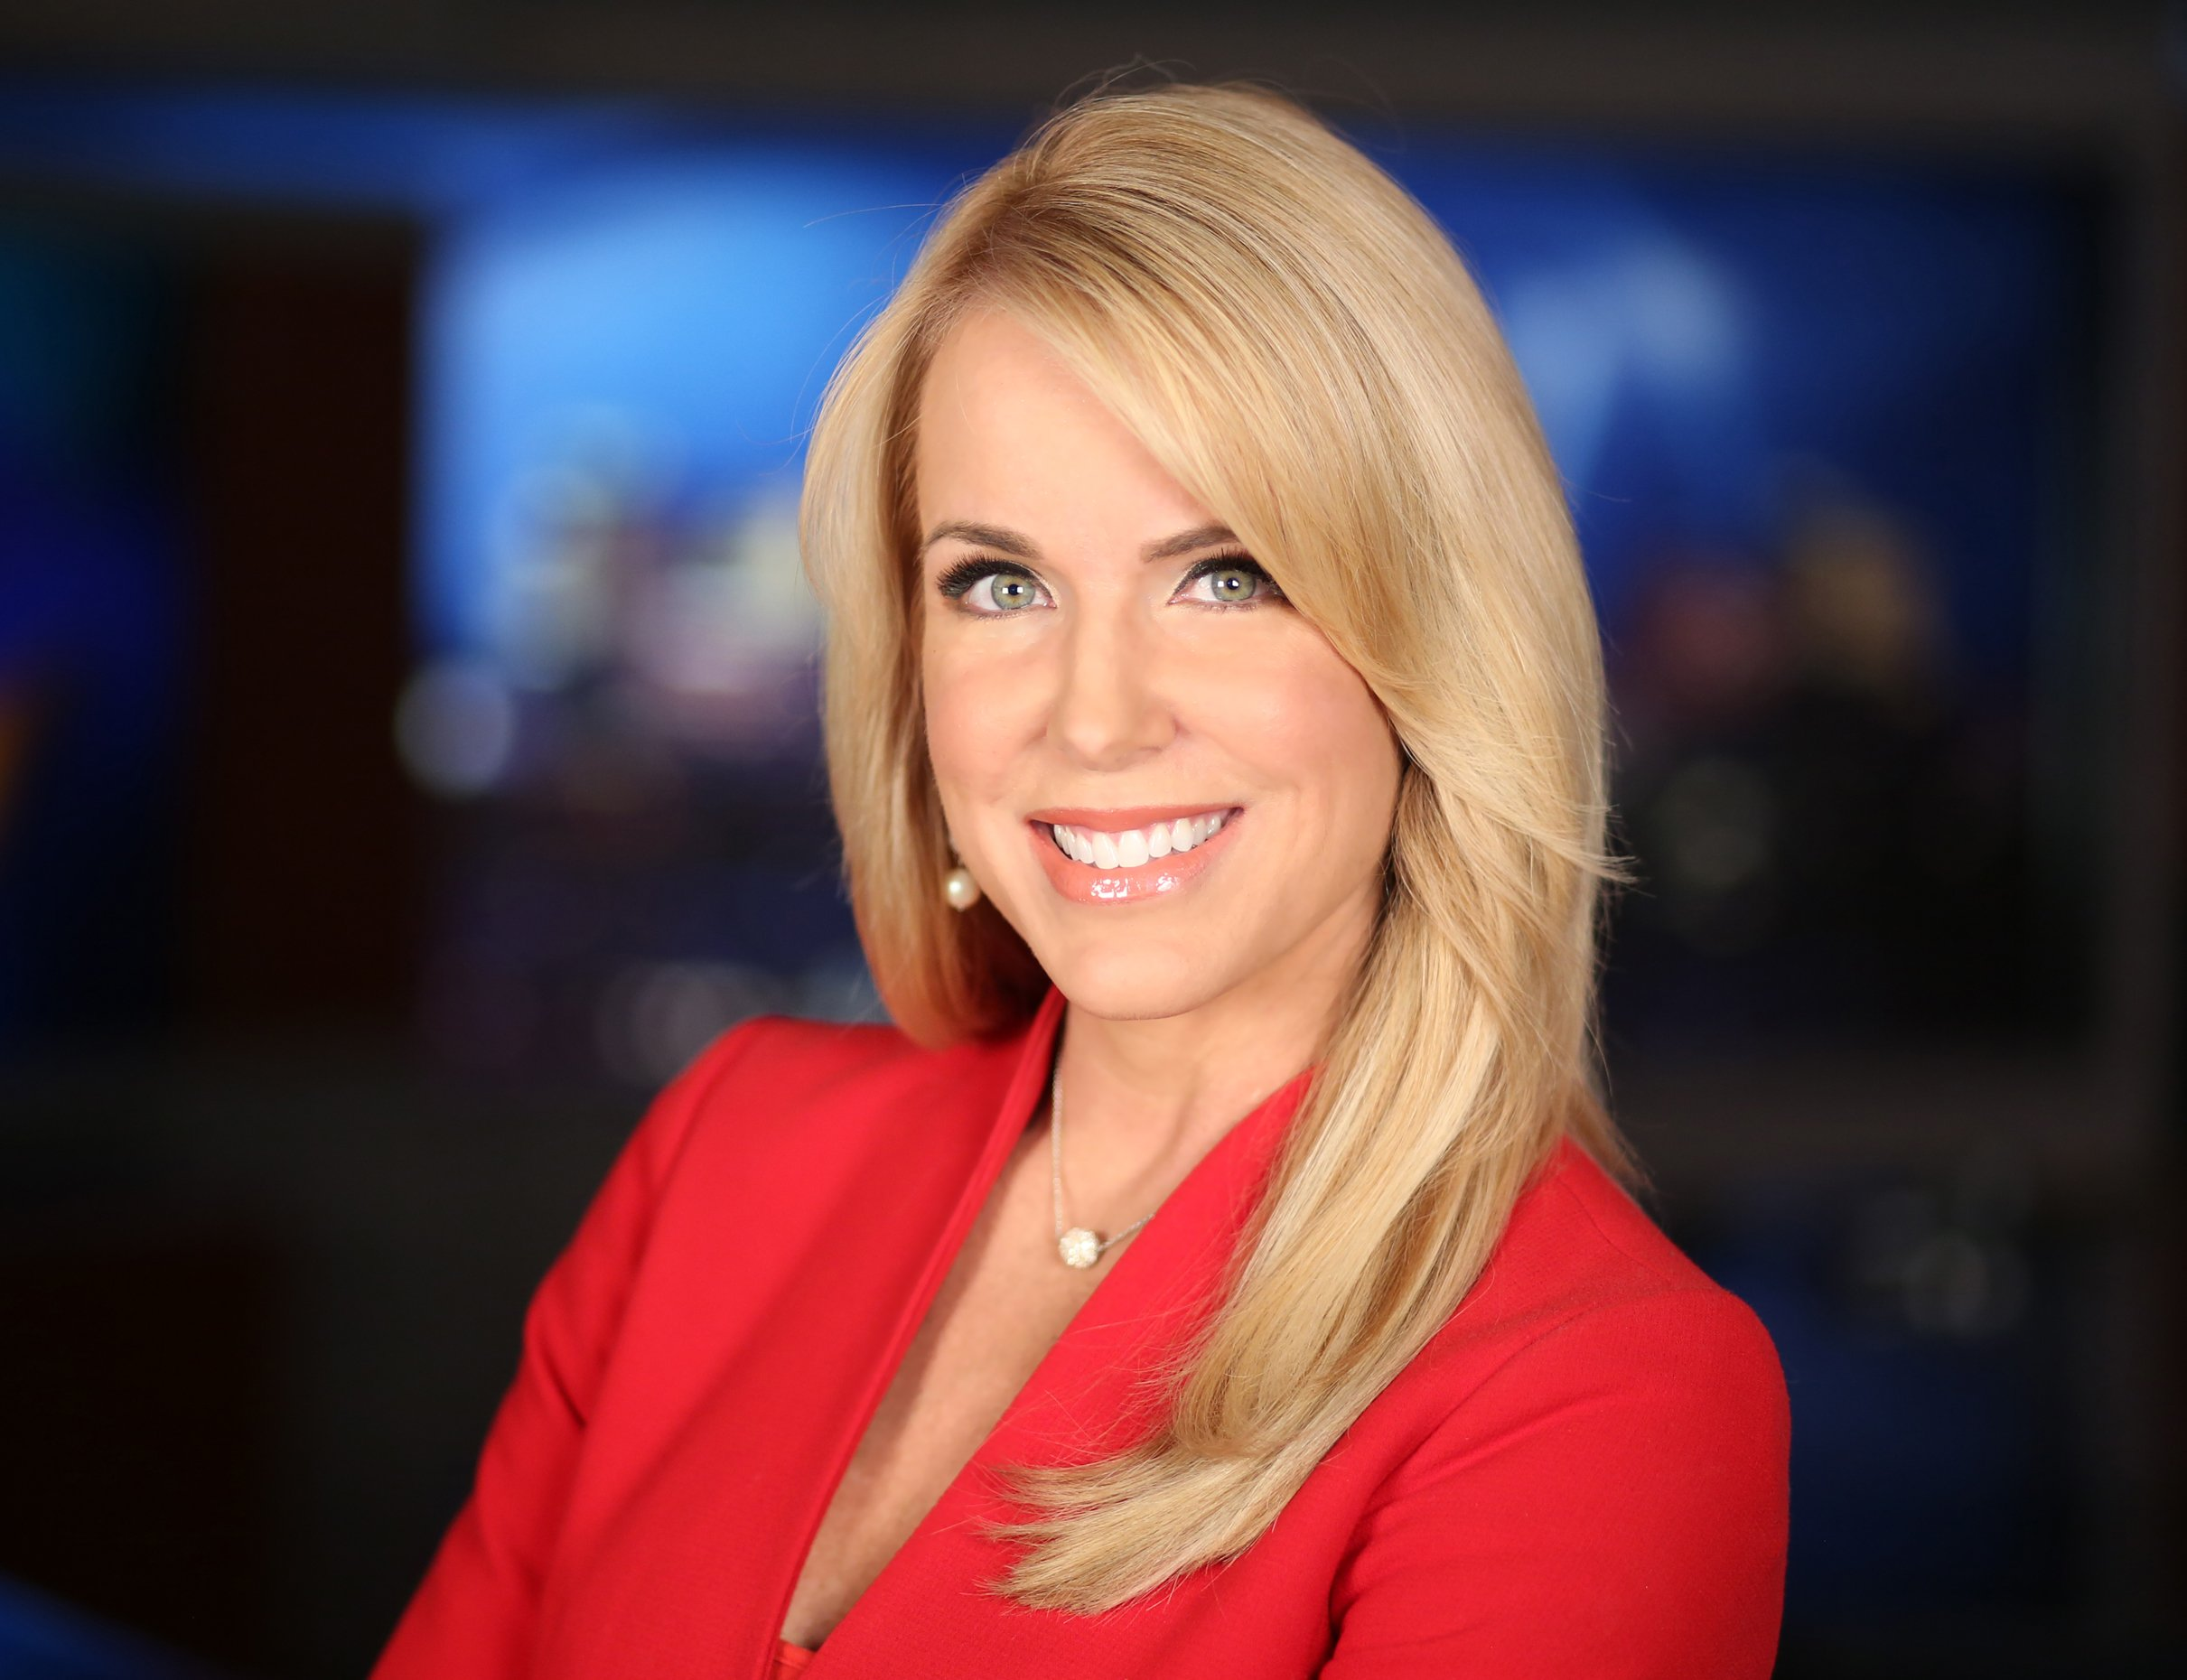 Wbtv Anchors http://www.wbtv.com/story/15716109/heather-moore